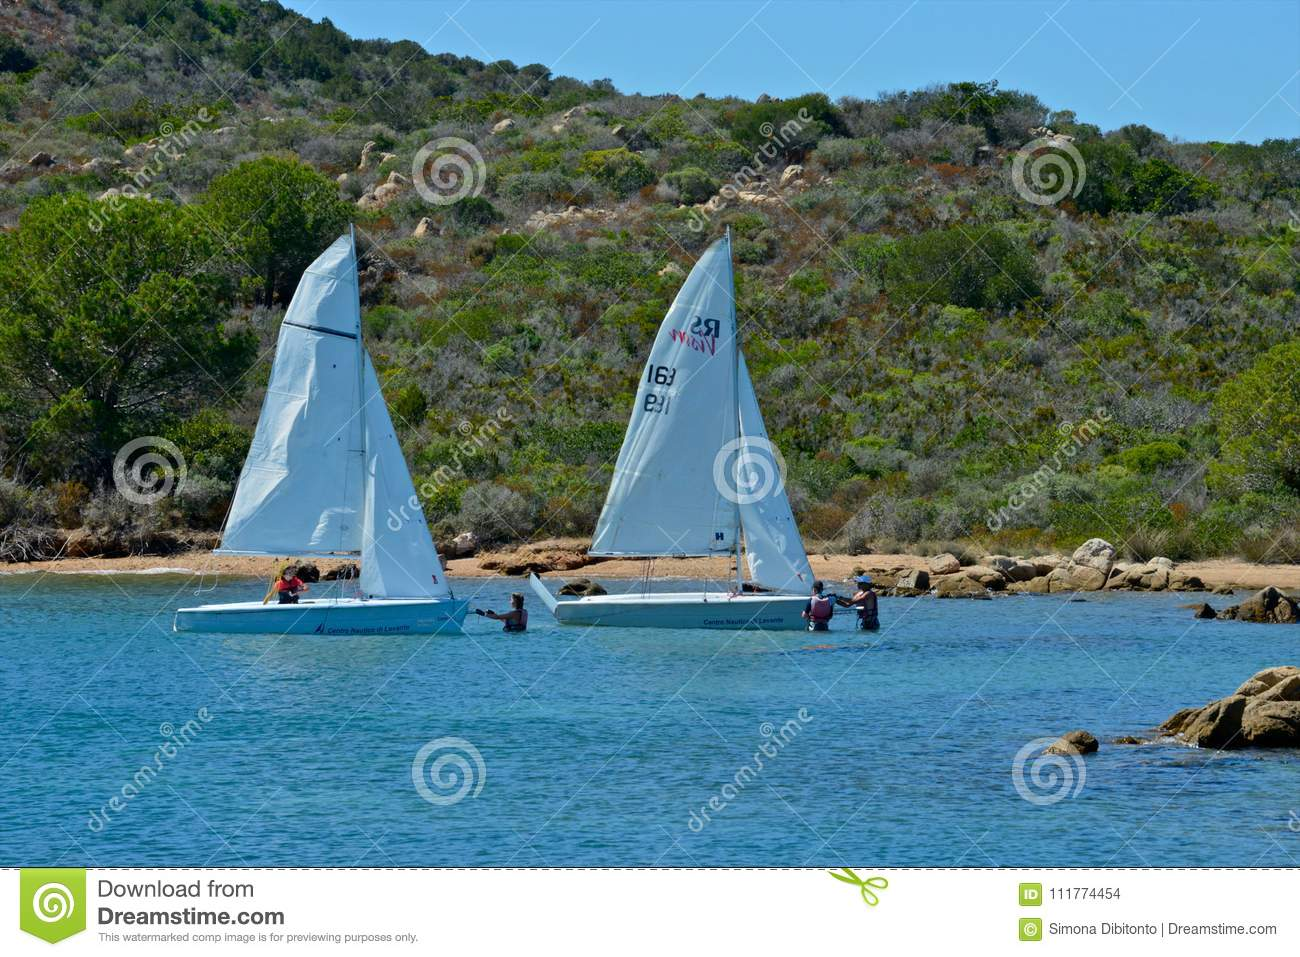 White sail boats with people learning to sail in the blue sea surrounded by nature